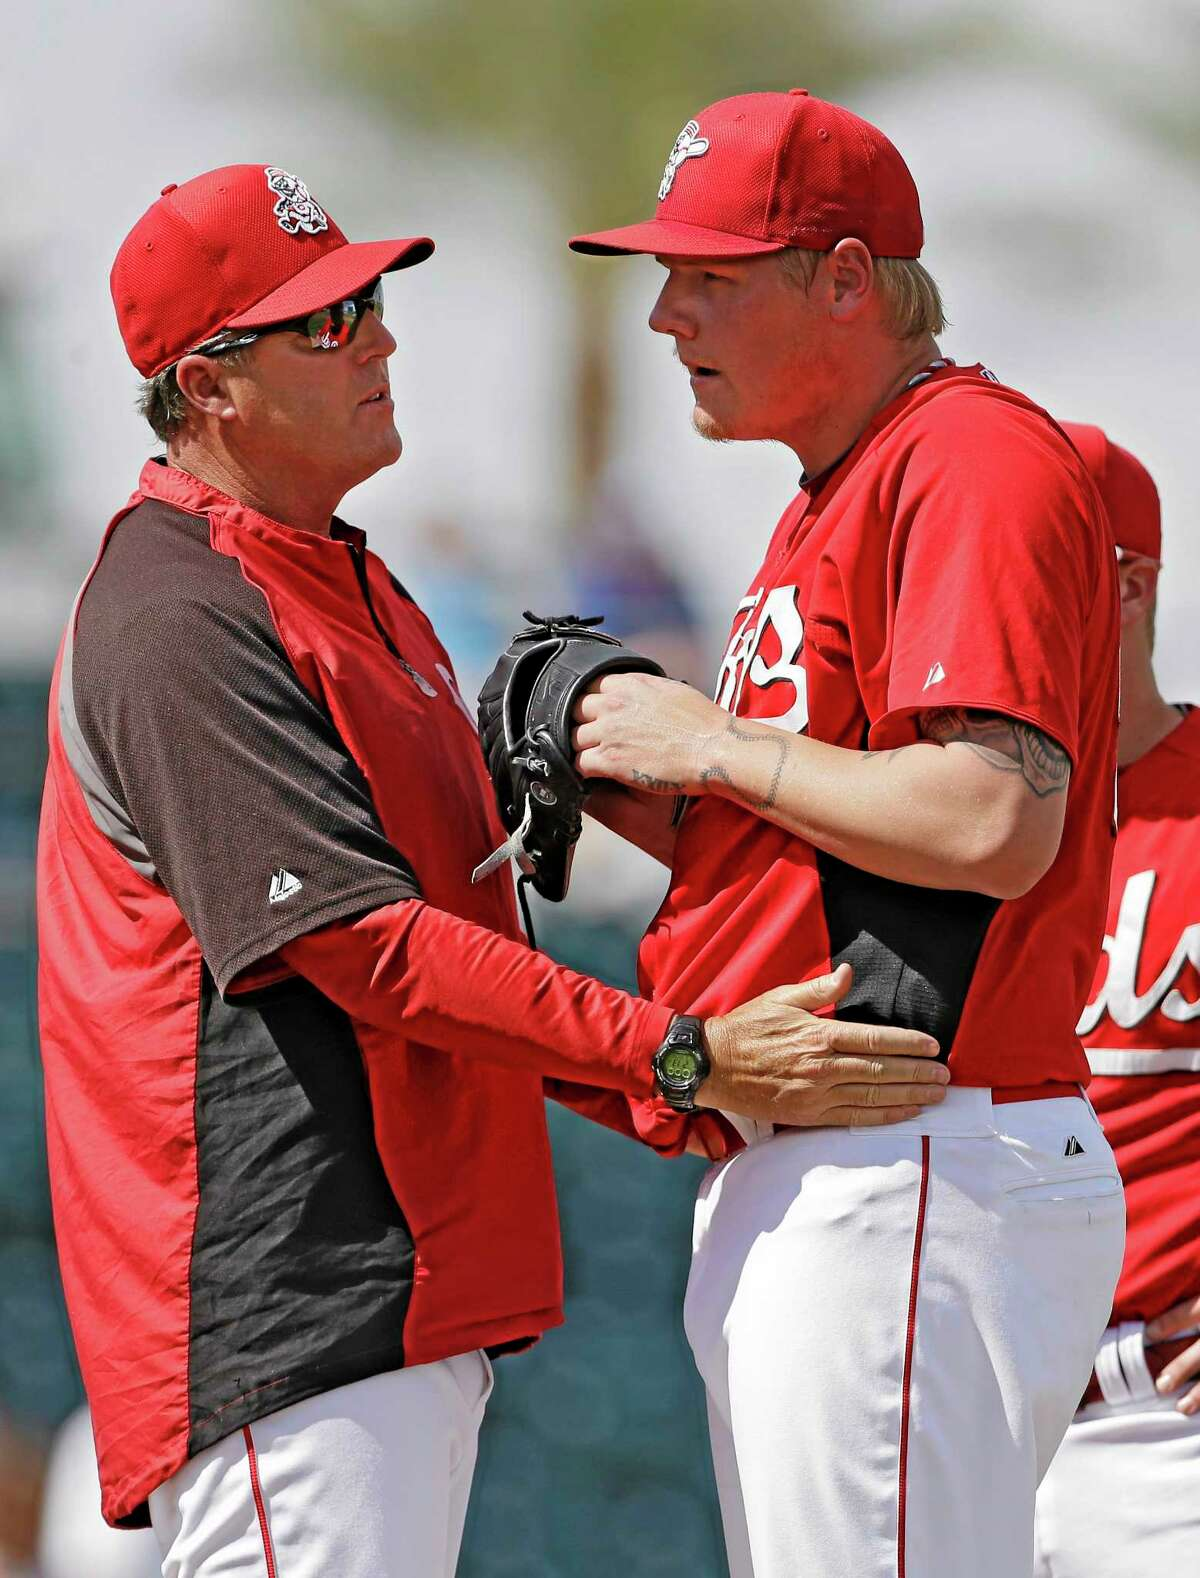 In this March 28 file photo, Cincinnati Reds pitching coach Bryan Price, left, talks to starter Mat Latos in the third inning of a spring training game against the Kansas City Royals in Goodyear, Ariz. The Reds have chosen Price to replace Dusty Baker as their next manager.